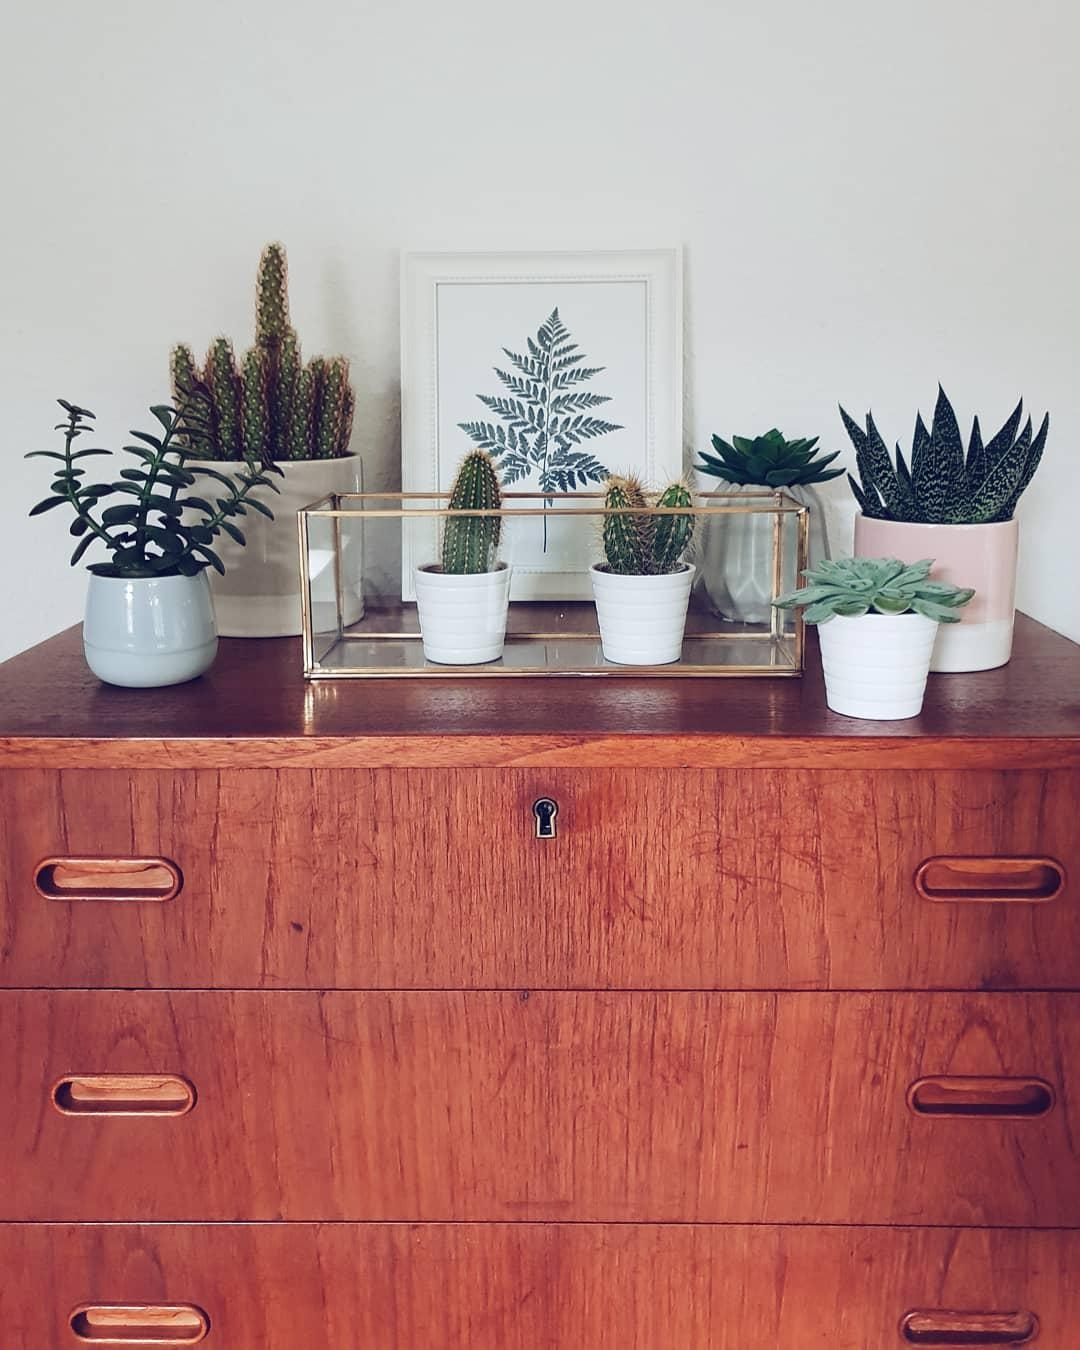 #plantgang #plantlover #urbanjungle #greenliving #greeninspo #cactus #succulents #plants #grün #interior #decoration #homedetails